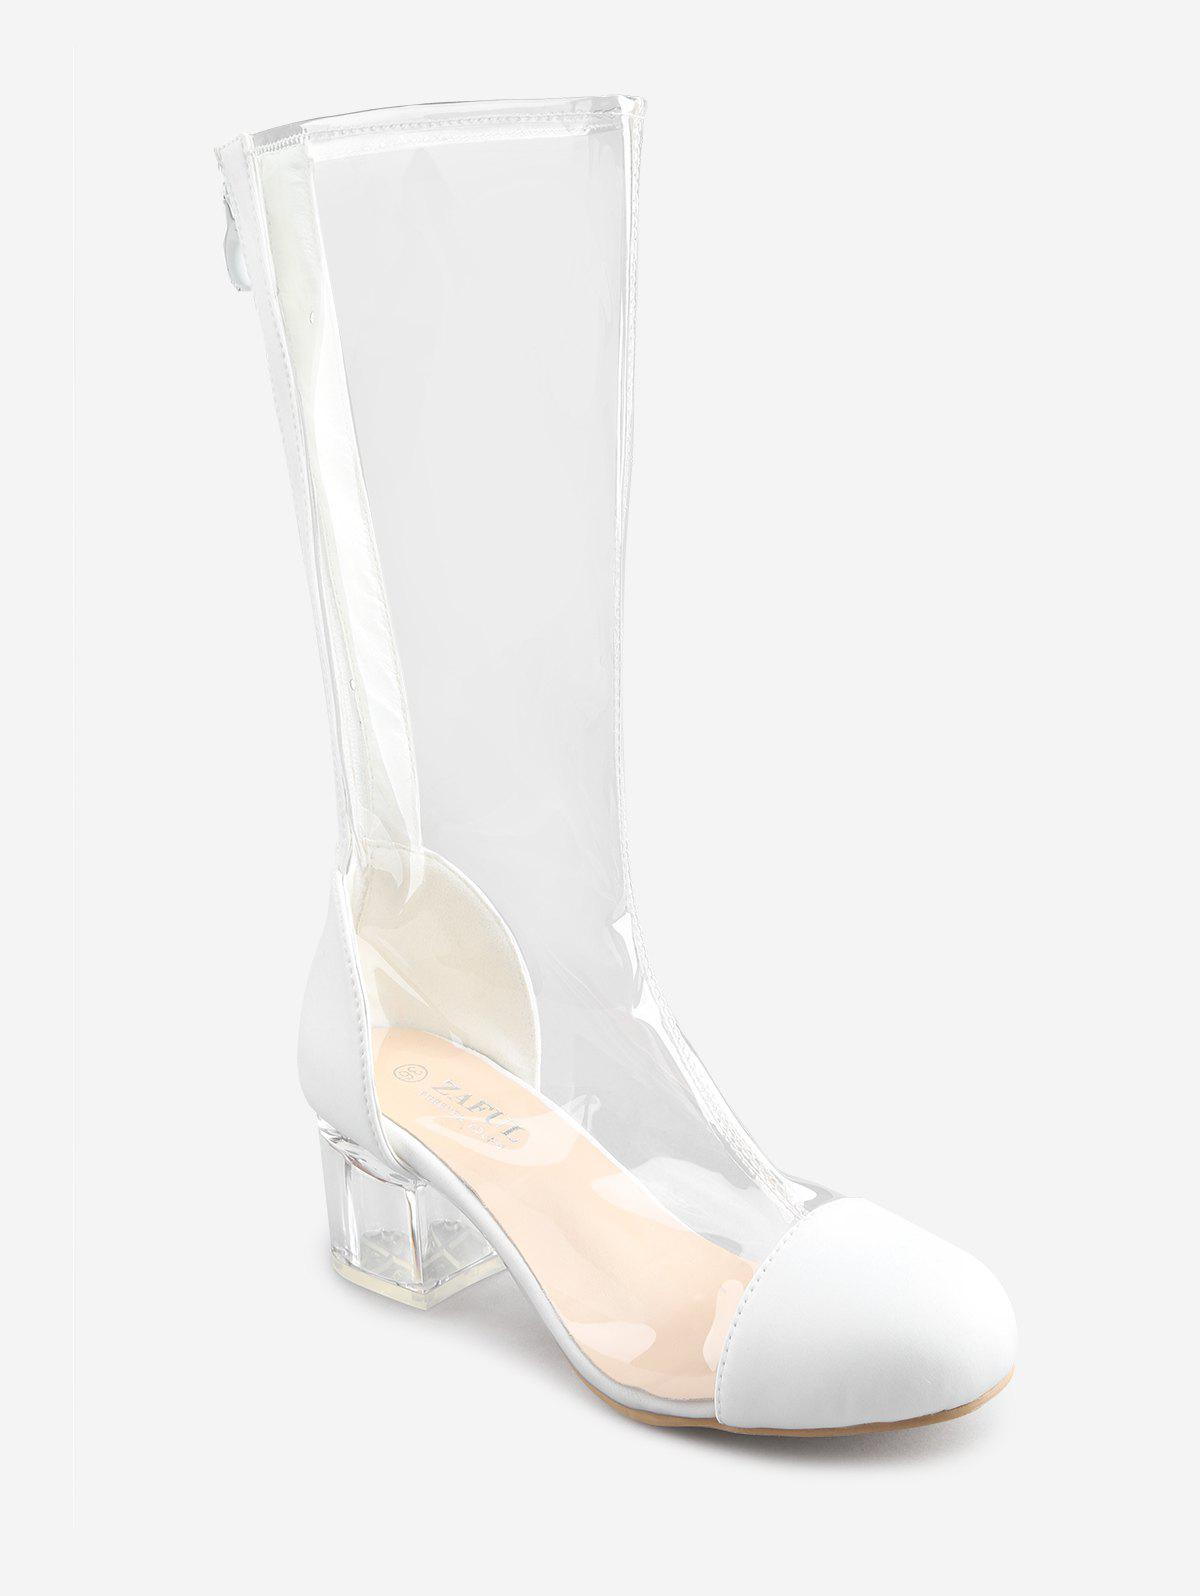 Transparent Block Heel Chic Mid Calf Boots - WHITE 38